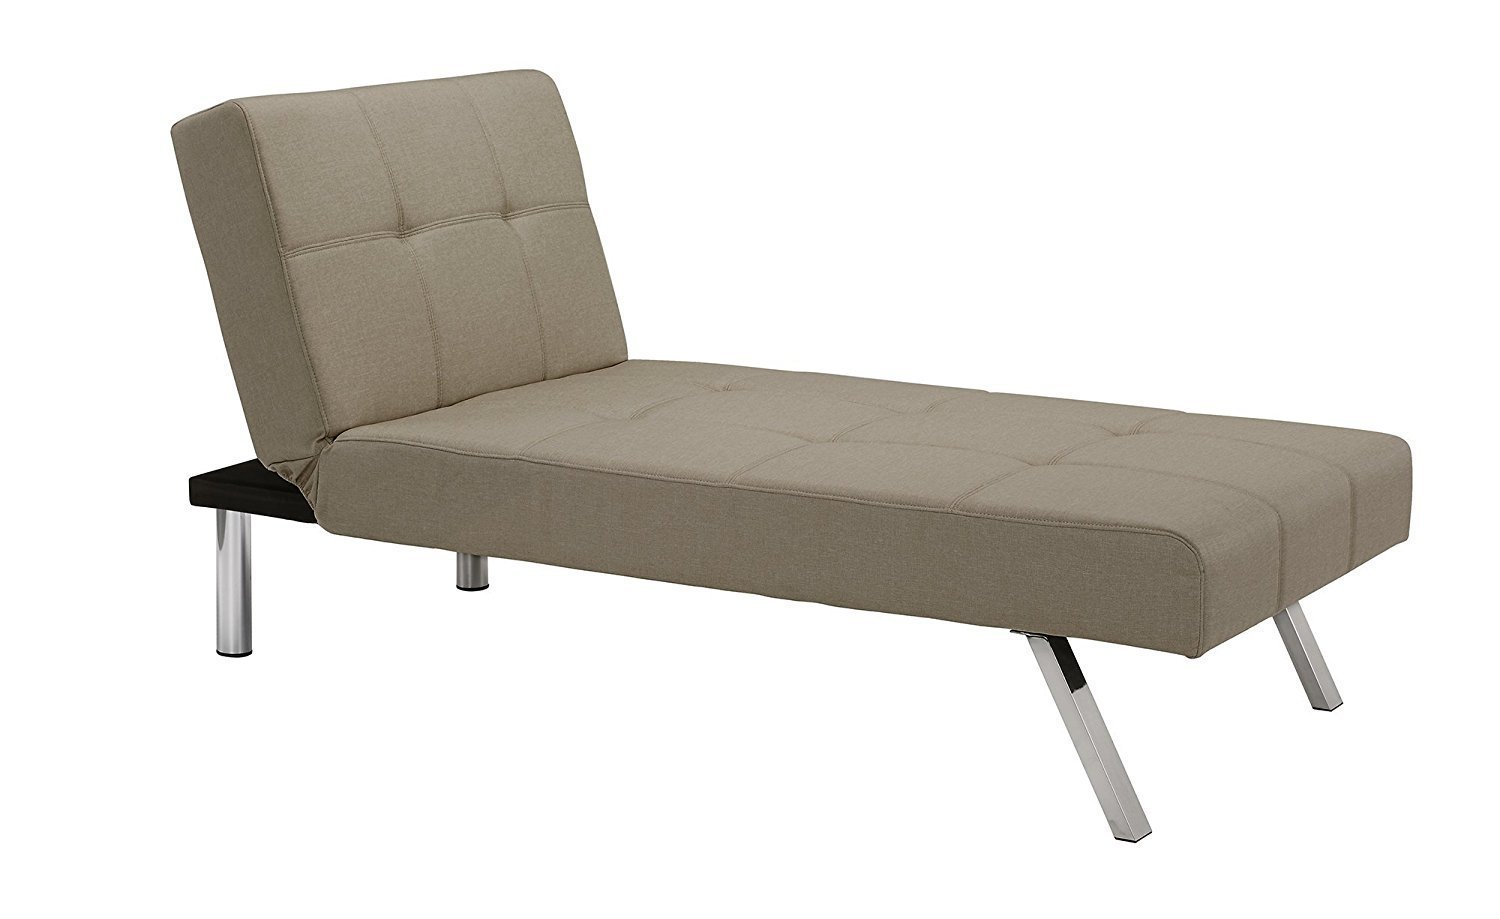 sofa chaises bed with chaise and storage sectional lounge home furniture design